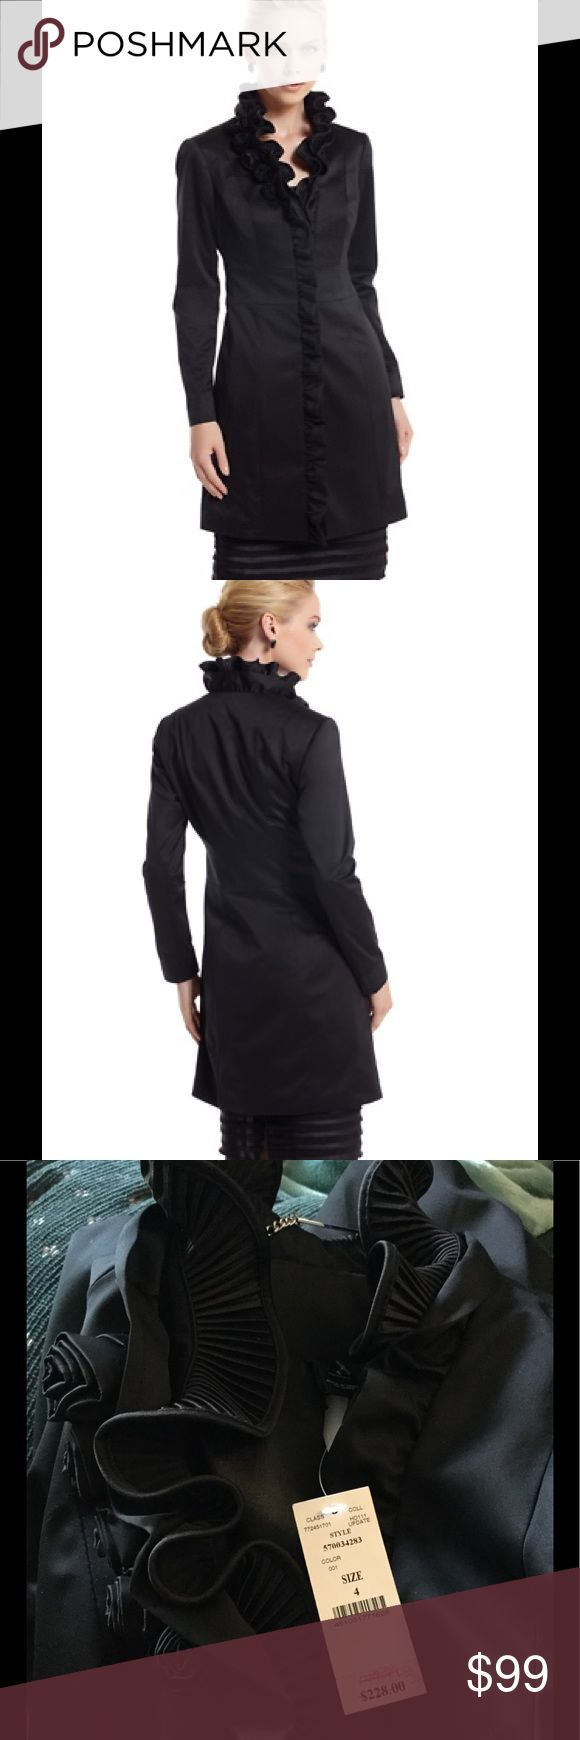 "🆕 WHBM pleated collar satin topper Accordion pleats ruffle the neckline of this sleek satin coat with rosebuds. 100% Polyester. Machine wash or dry clean. Imported.  Contour fit.  Hidden snaps close the placket.  Fully lined.  Underarm across 17"". Length 33"".  Brand new with tag. Retail price $228.  Smoke free and pet free. White House Black Market Jackets & Coats"